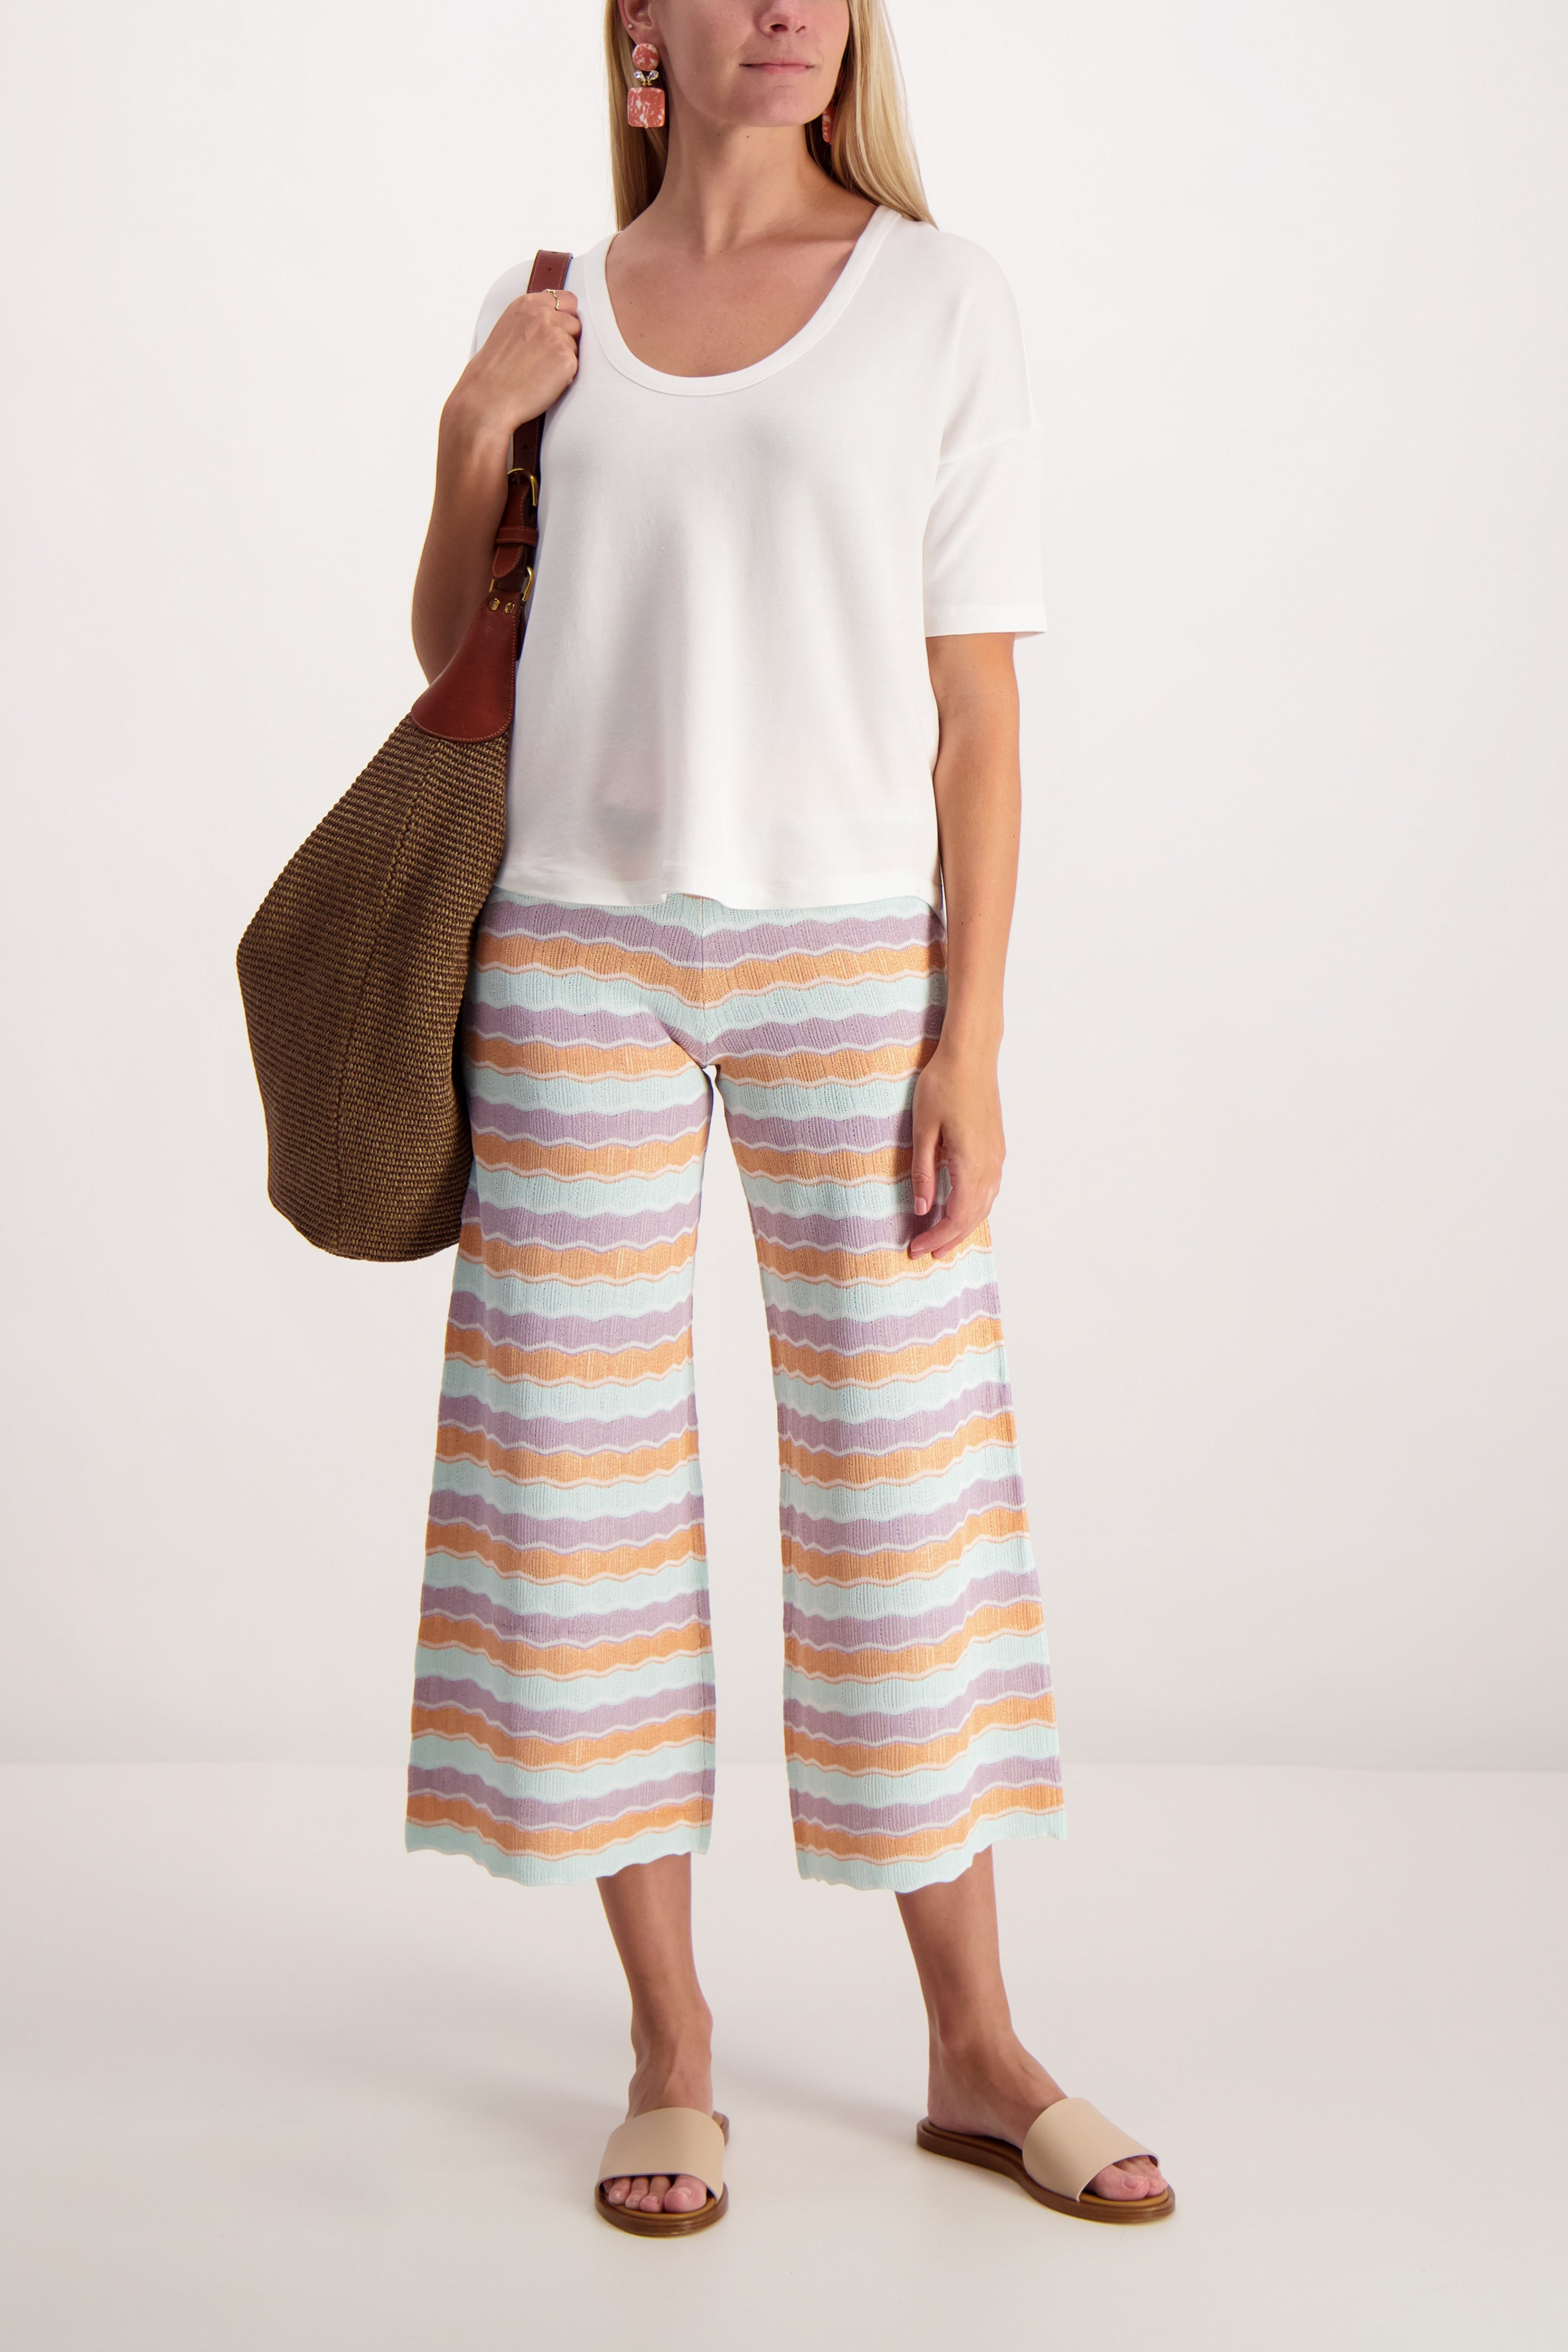 Full Body Image Of Model Wearing Alice & Olivia Basil Knit Pant